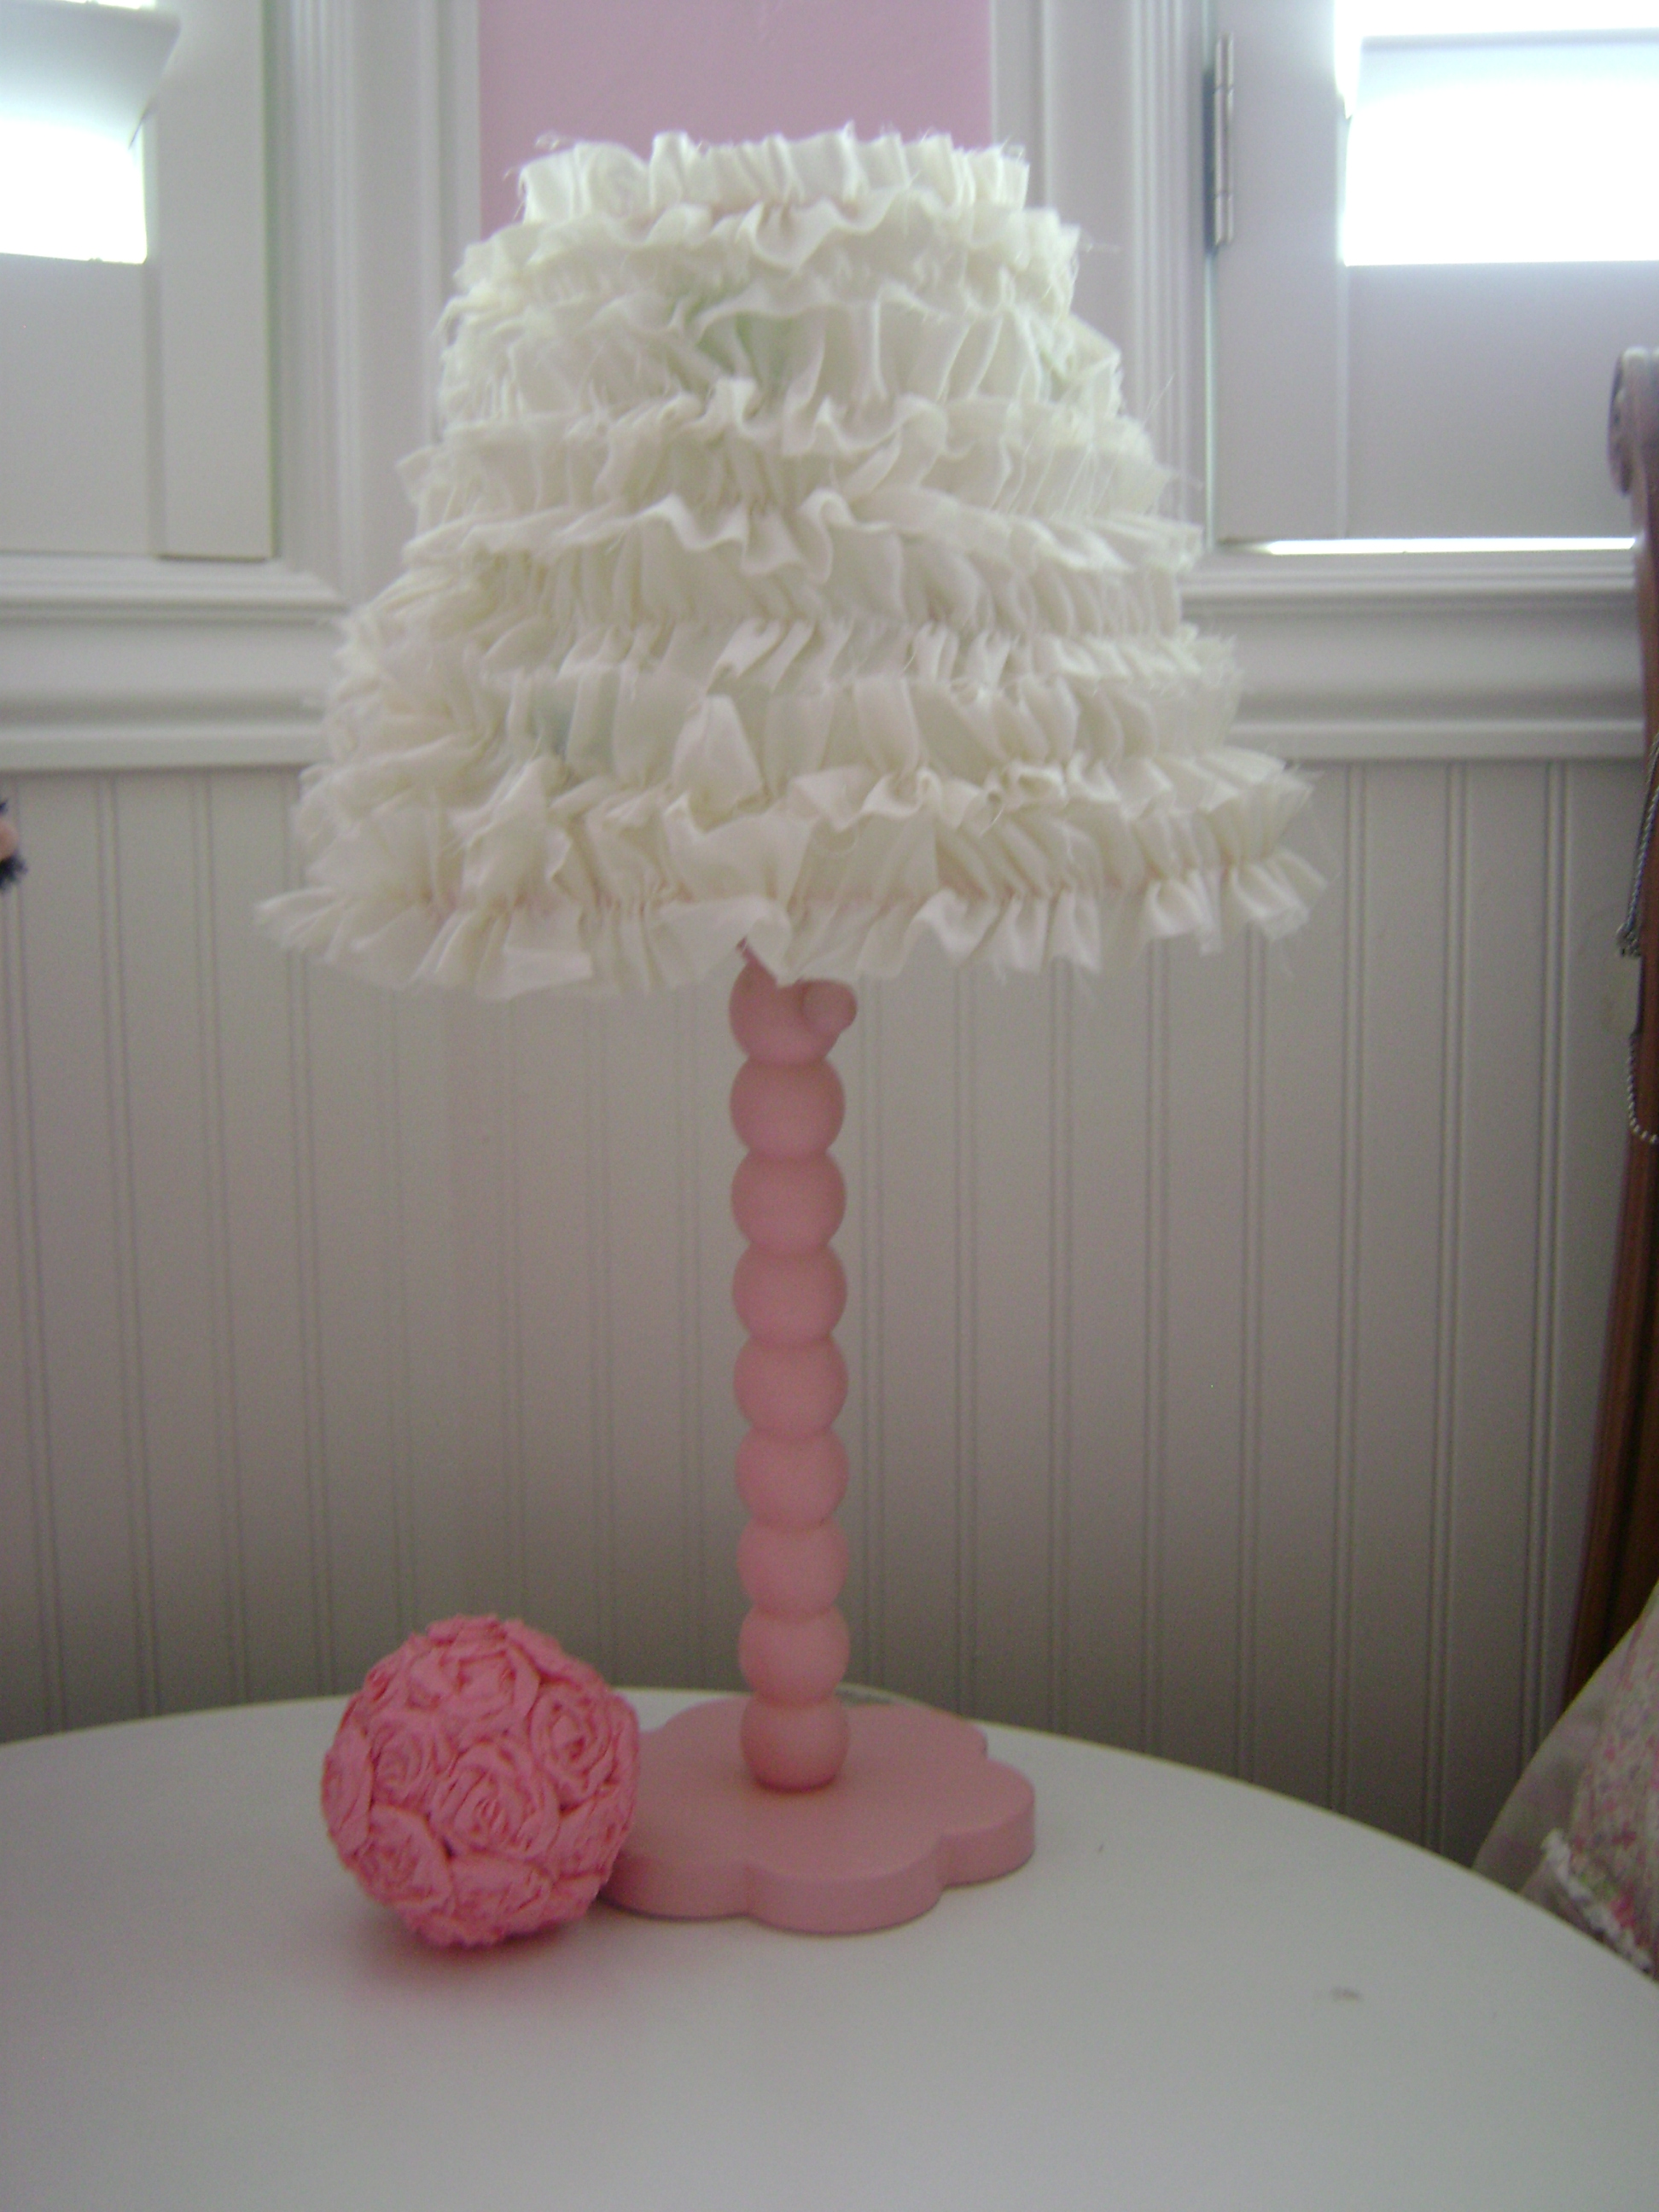 How to make a ruffled lamp shade craft for Redoing lamp shades